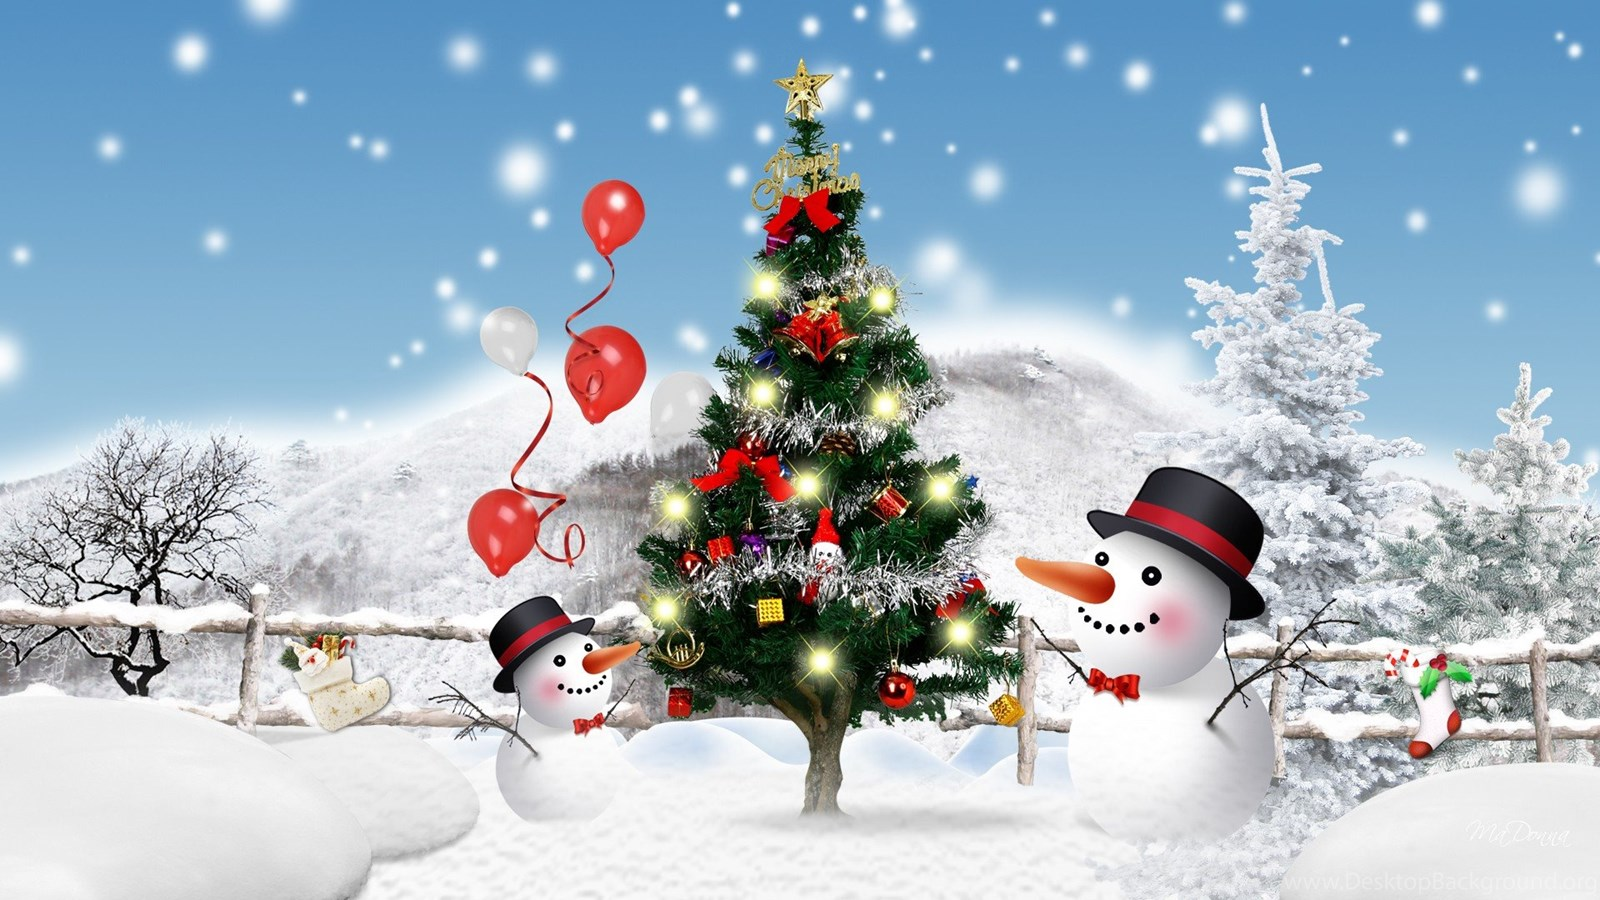 3d christmas wallpaper backgrounds best hd desktop wallpapers